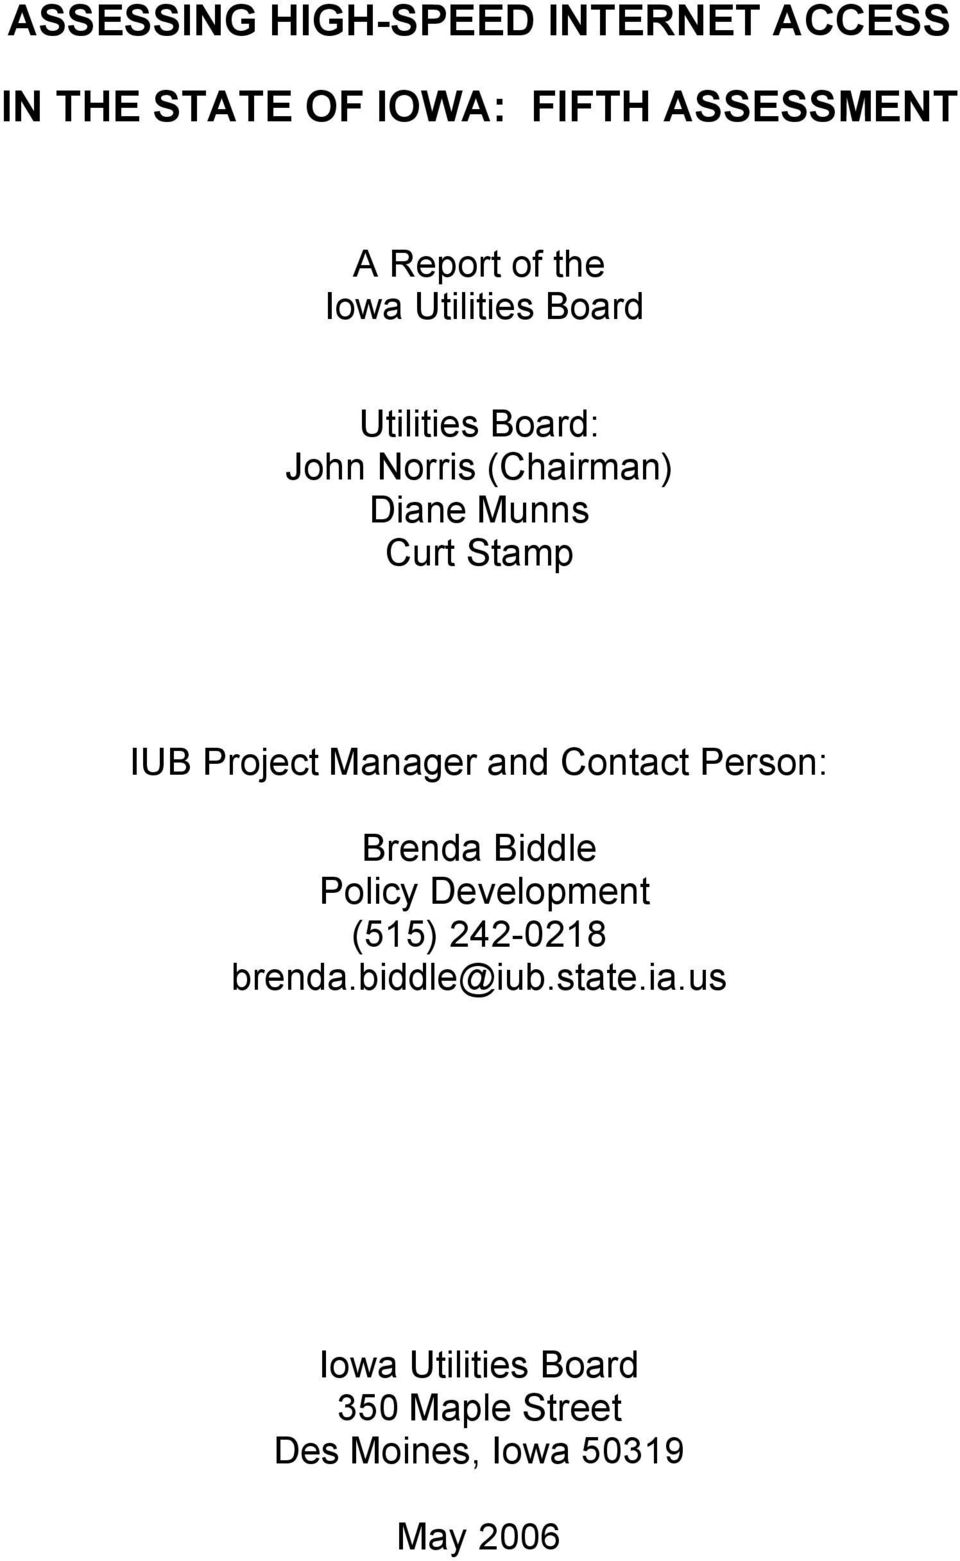 IUB Project Manager and Contact Person: Brenda Biddle Policy Development (515) 242-0218